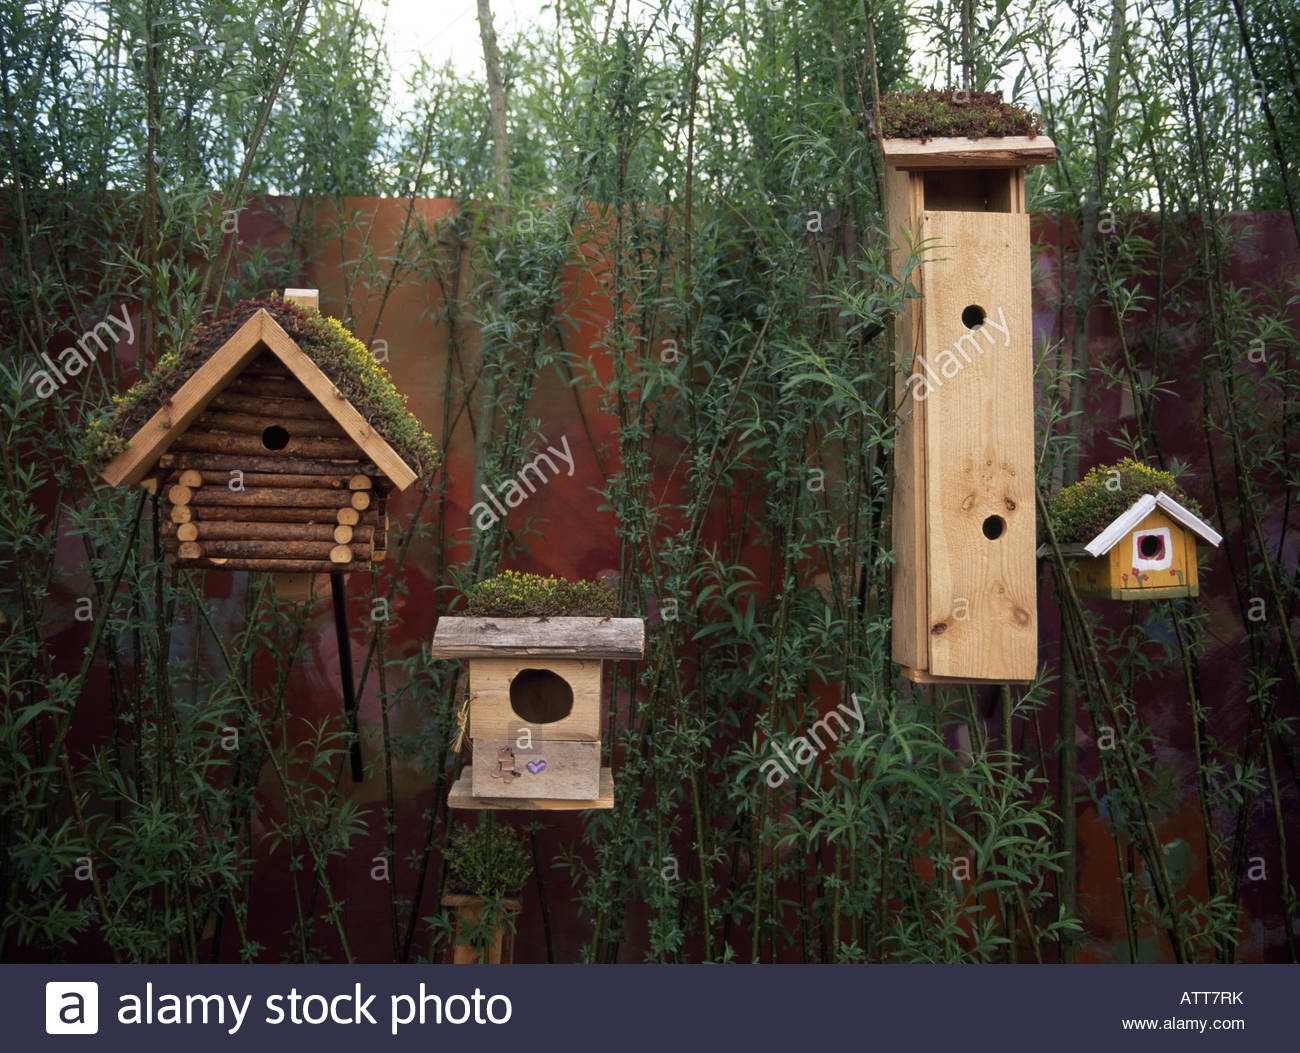 Different types of birdhouses stock photo royalty free for Different types of birdhouses